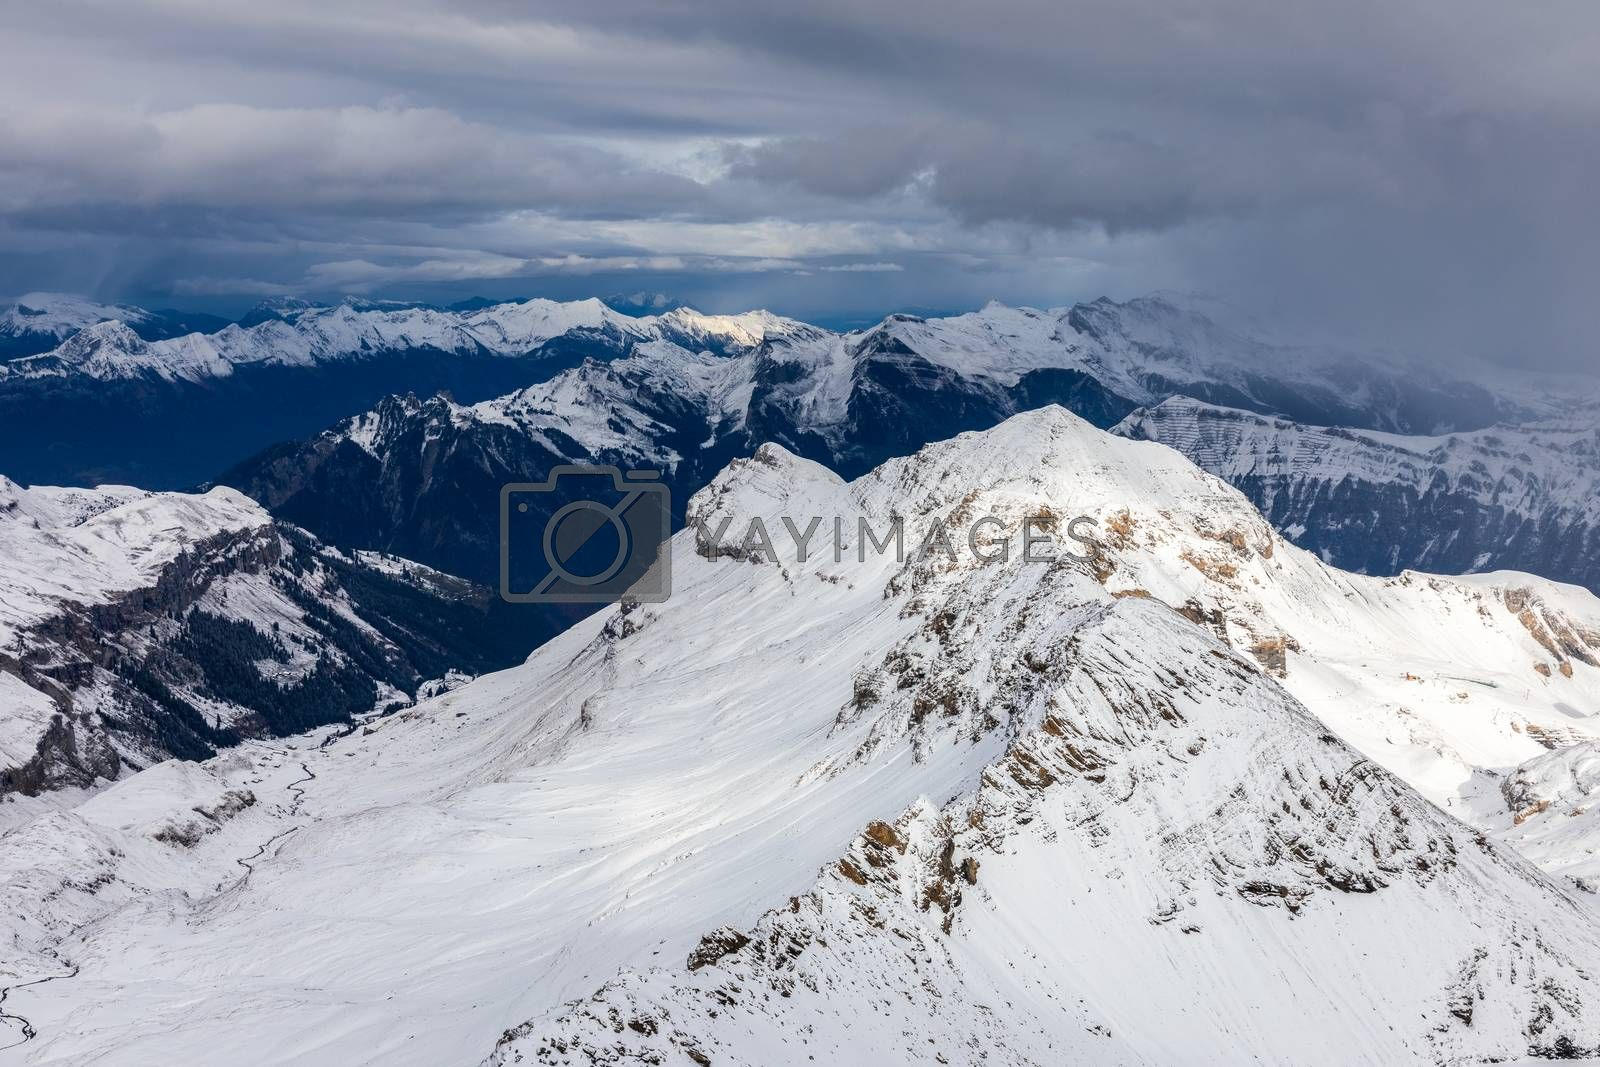 Snow capped mountains range during winter in Shilthorn, Switzerland.